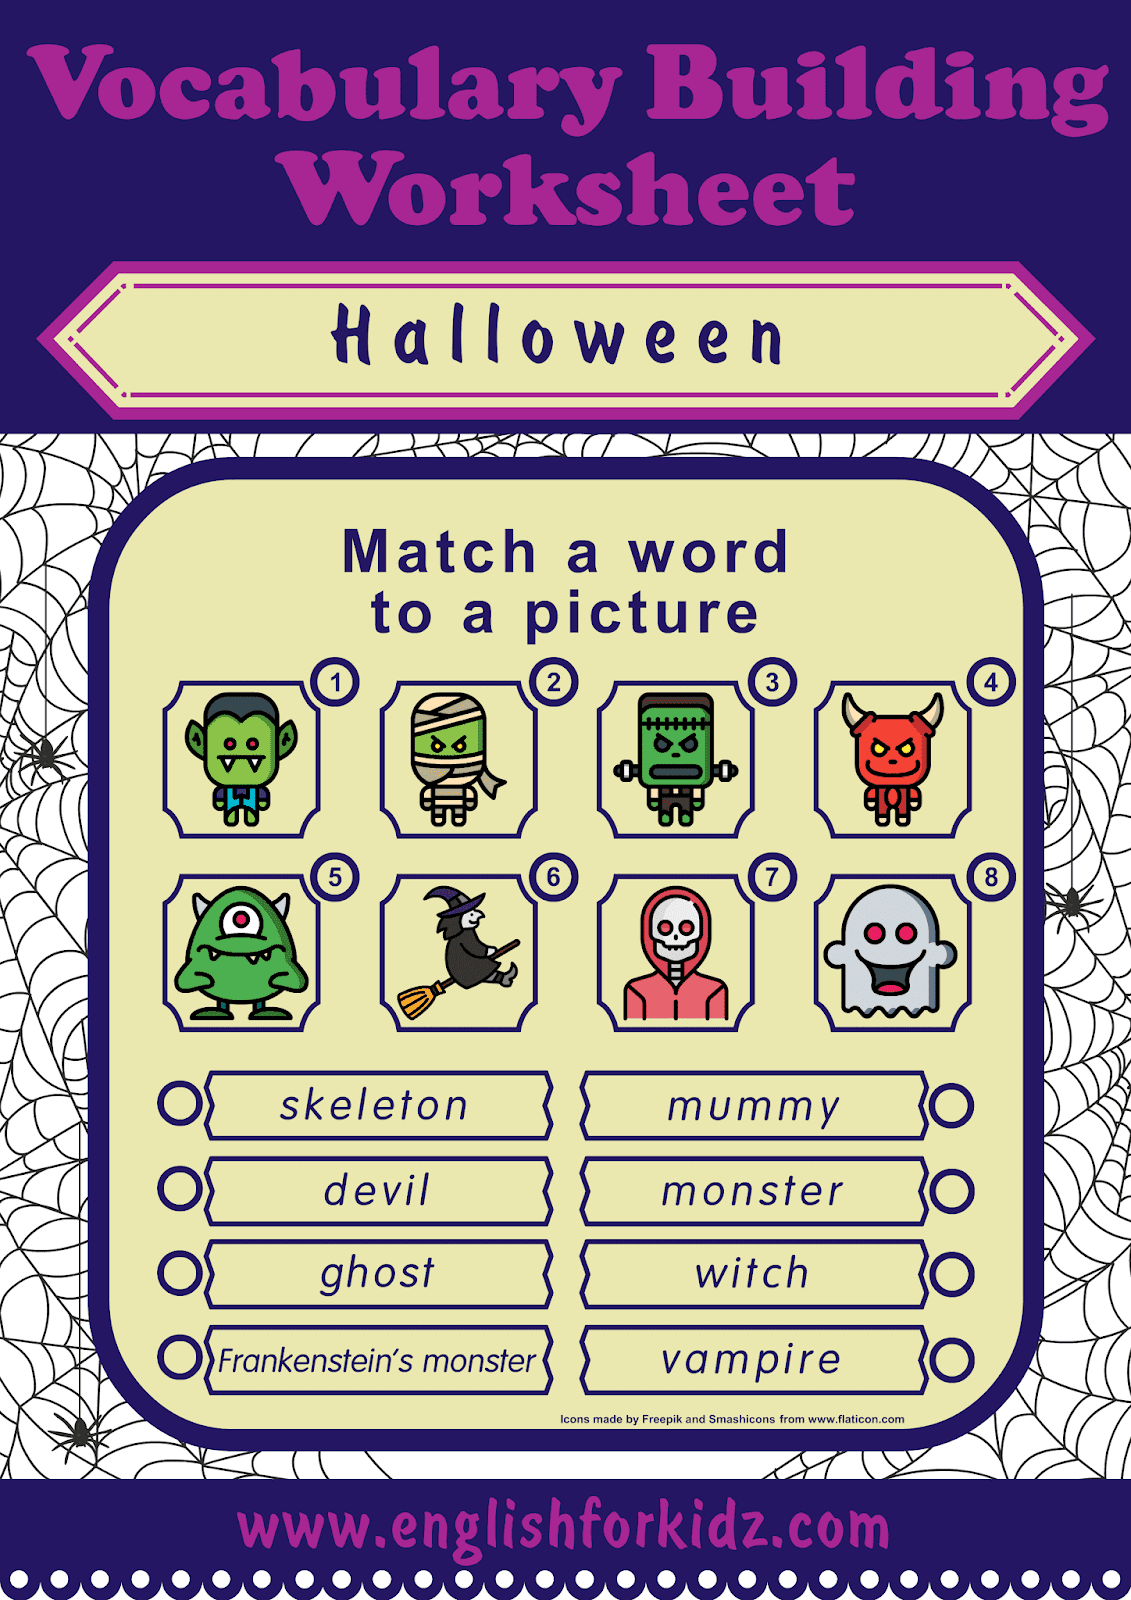 English For Kids Step By Step Printable Halloween